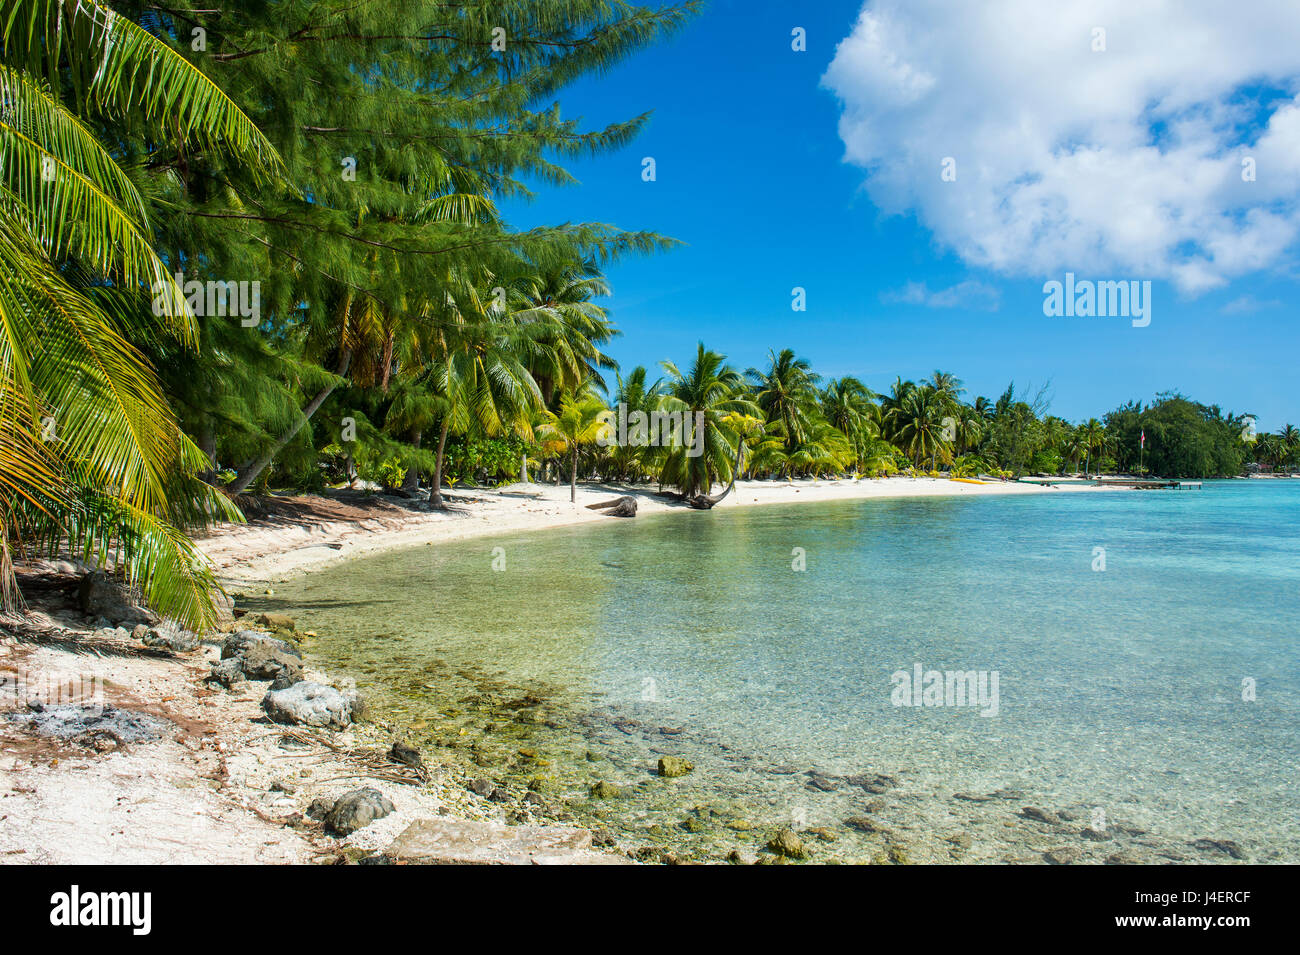 Beautiful palm fringed white sand beach in the turquoise waters of Tikehau, Tuamotus, French Polynesia, Pacific - Stock Image